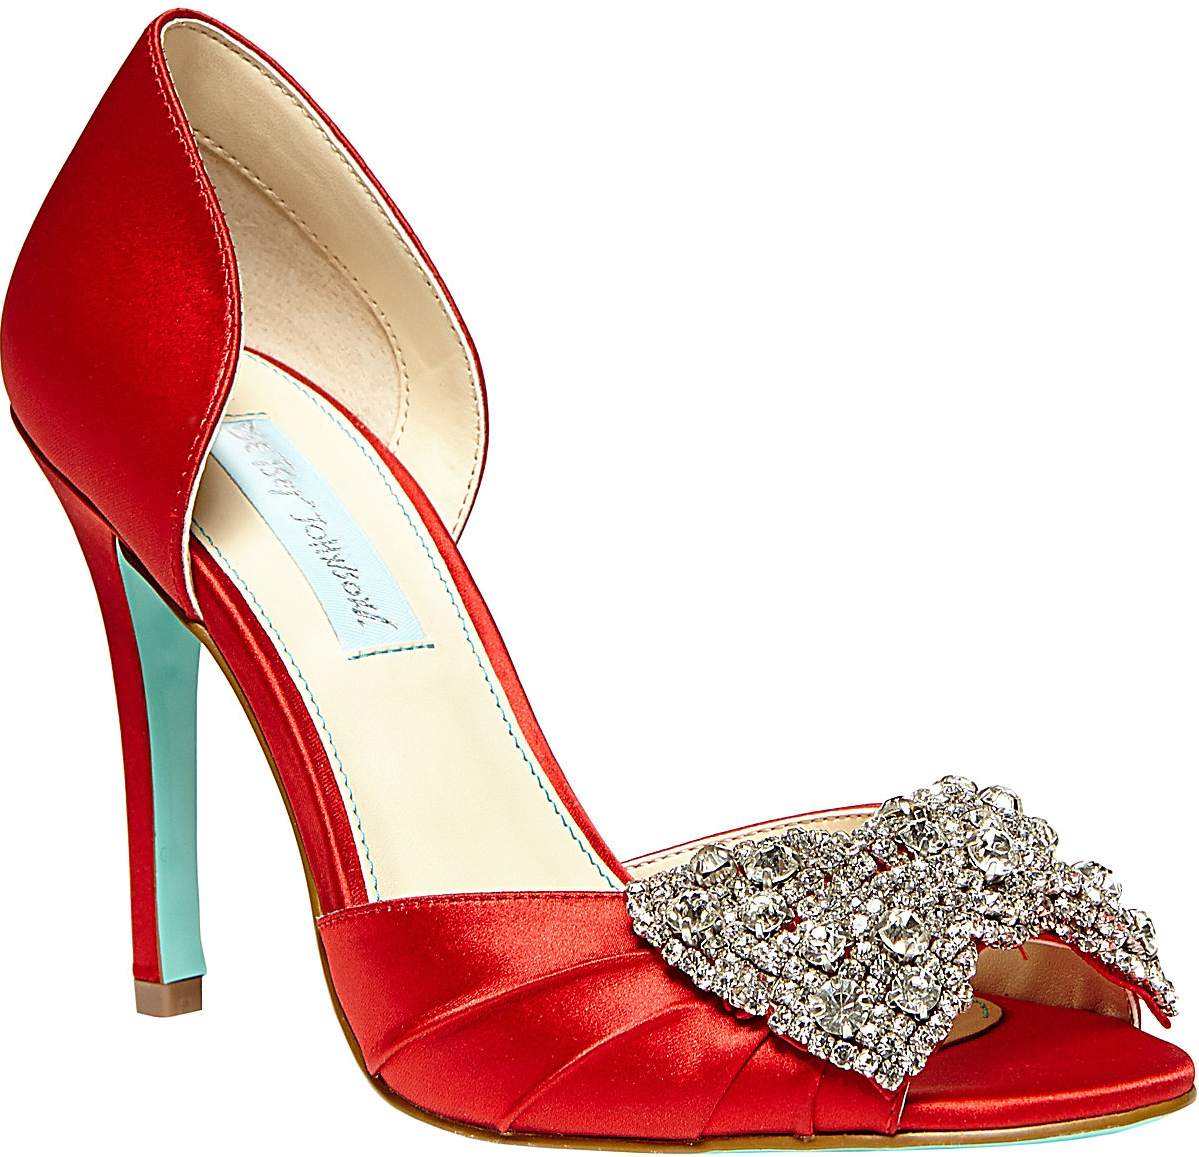 Betsey Johnson SB-GOWN Red Evening High Dorsey $129.00 #shoes #heels ...